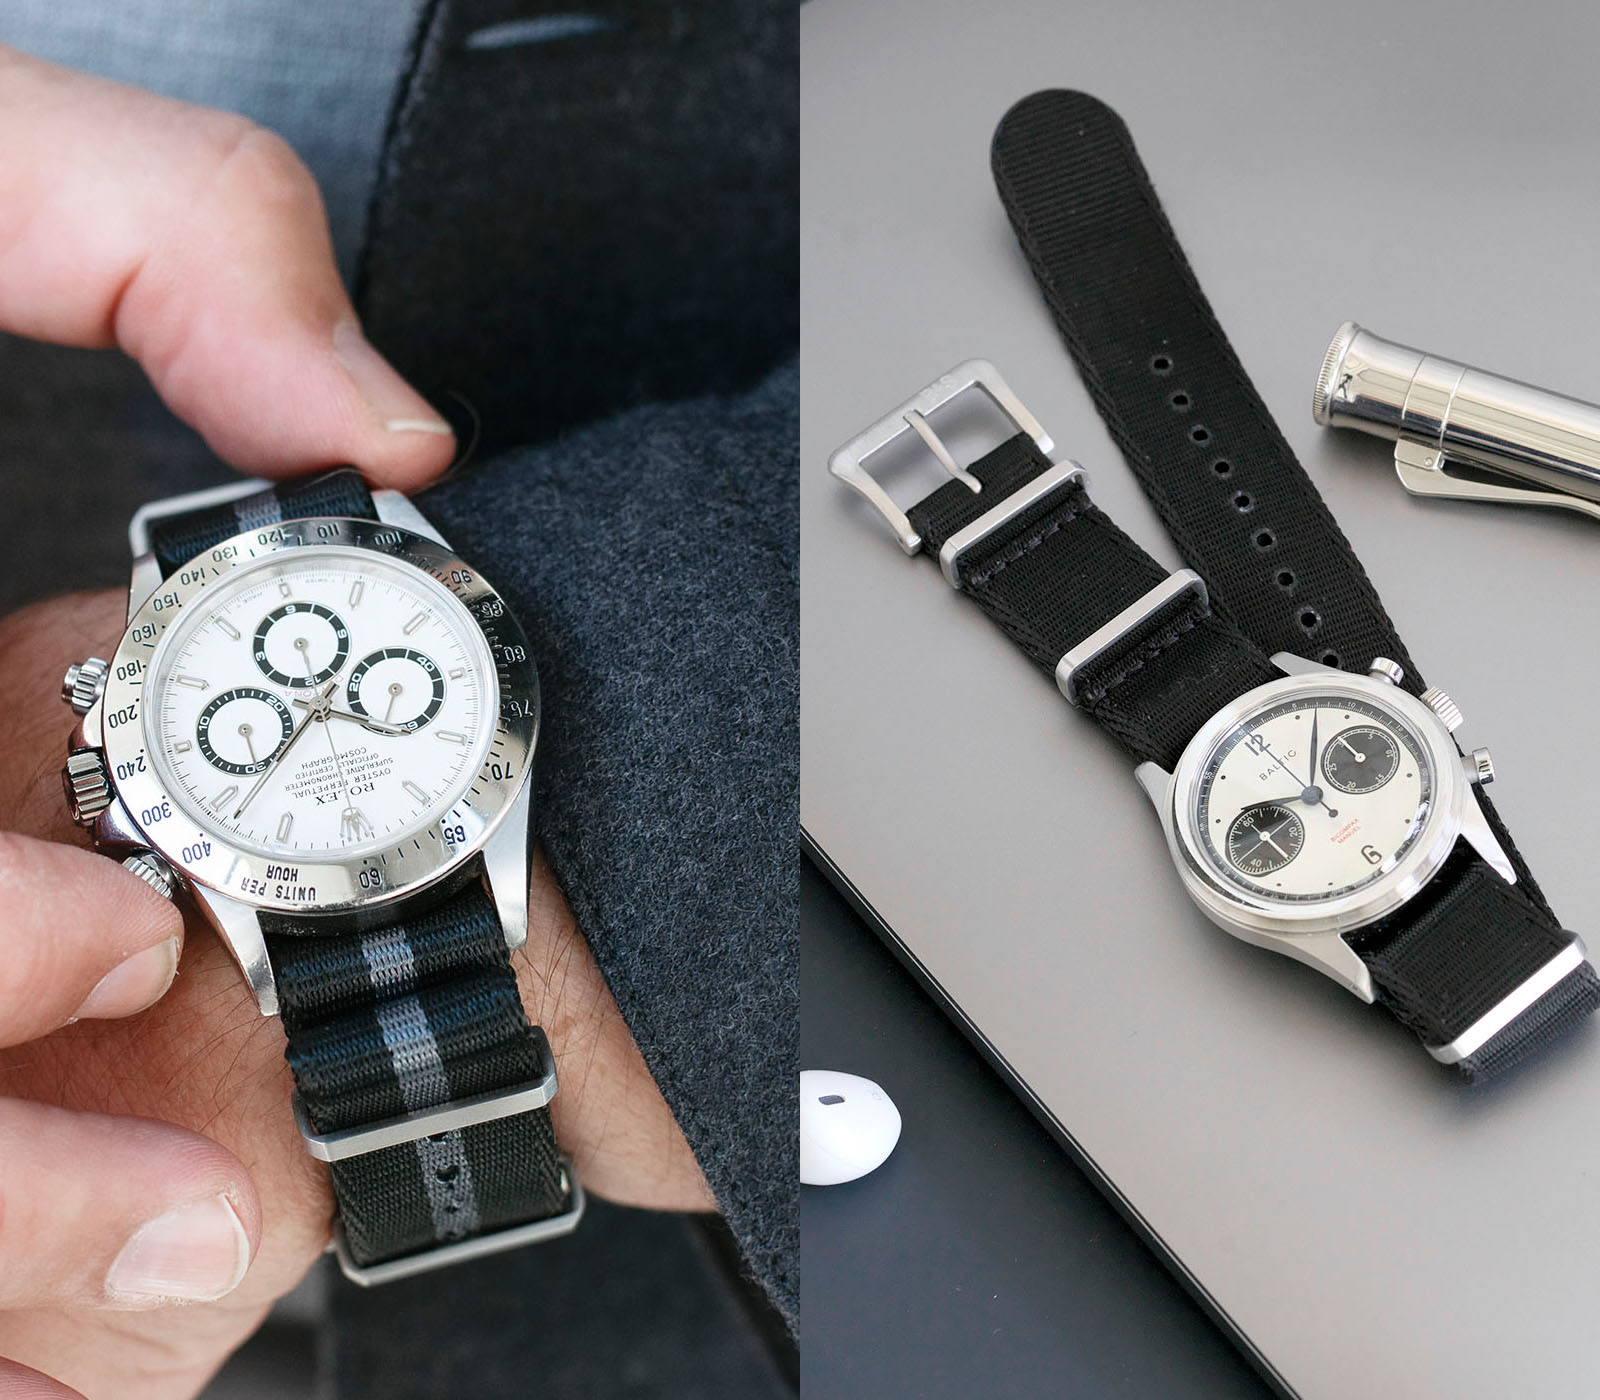 The 9 TO 5 Collection - Authentic Style for your Business and Life, Rolex 16520 Zenith Daytona on a Bulang and Sons Watch Strap